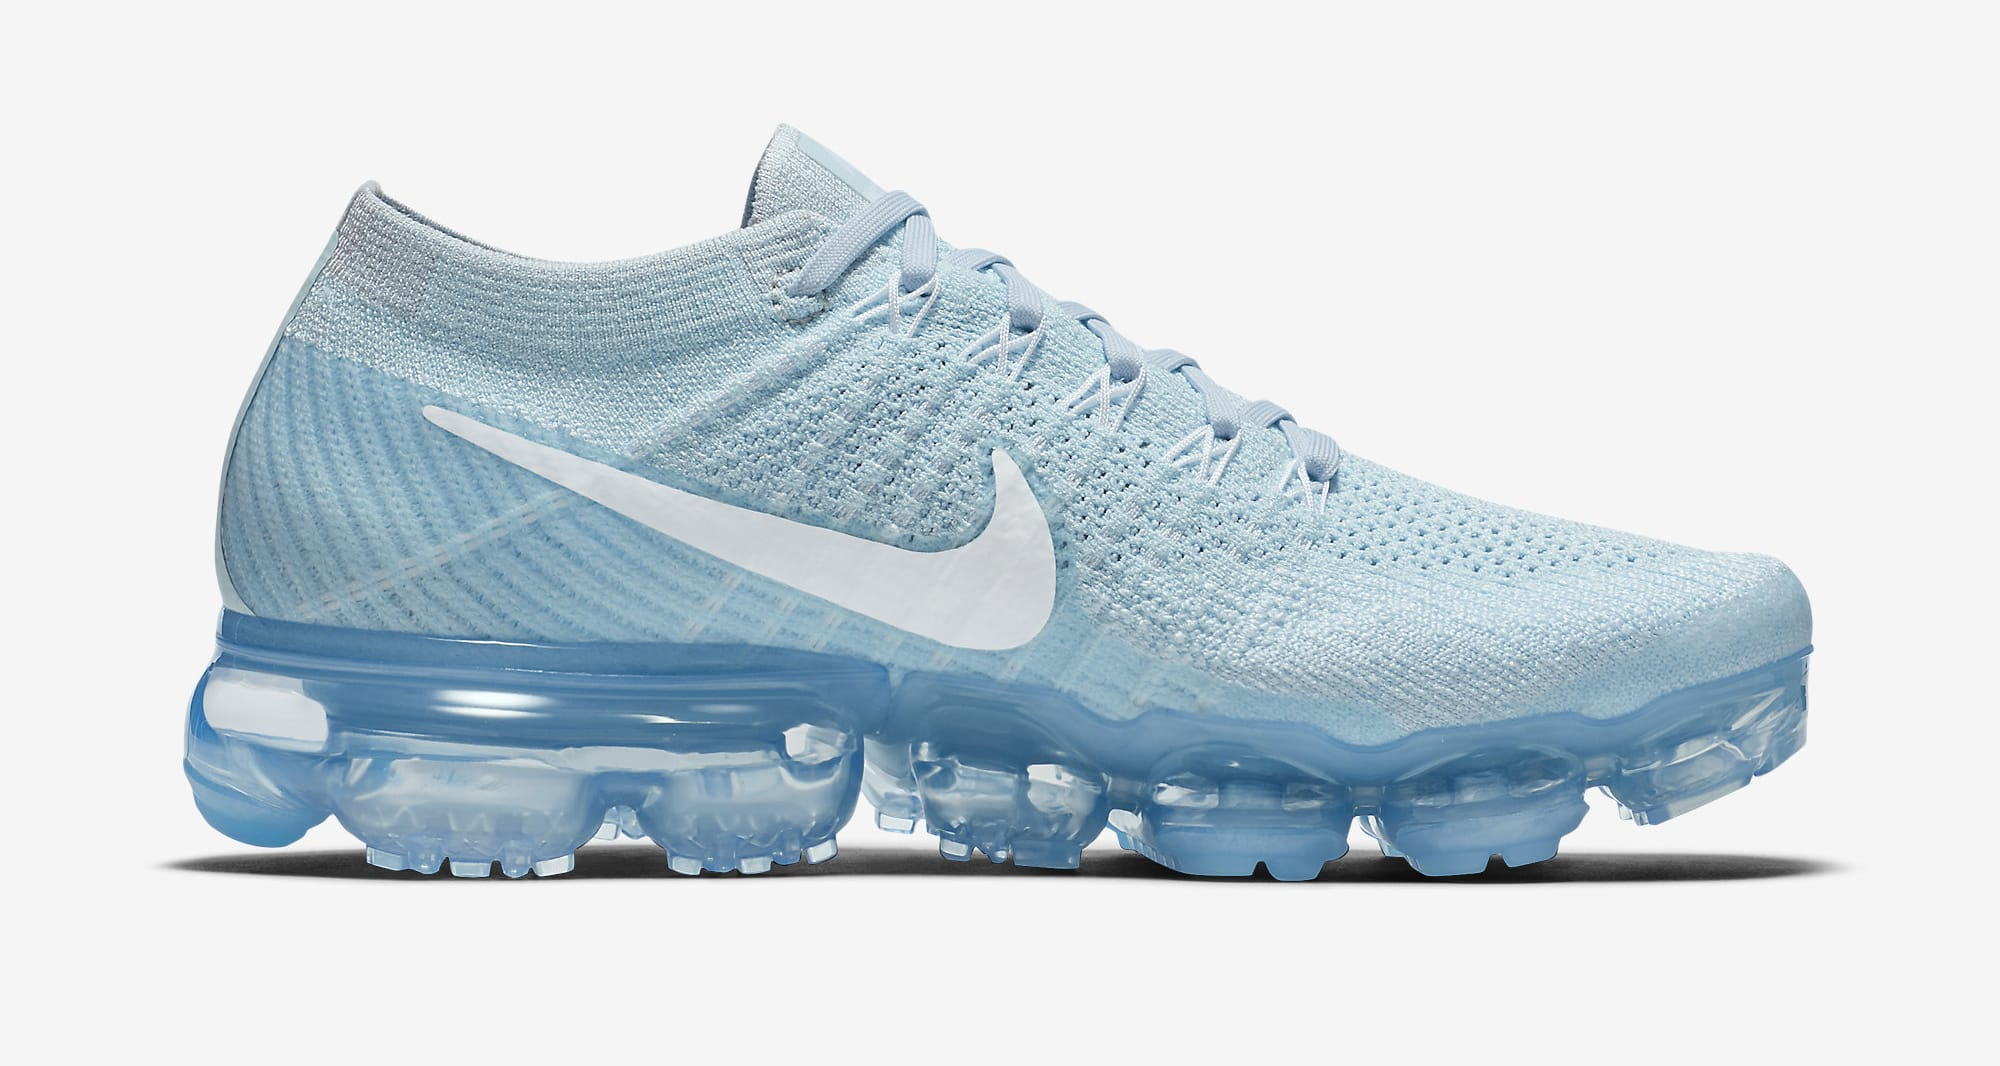 05f0dfe936c3 Buy Nike Cheap Air Vapormax Flyknit Running Shoes Sale Online 2018